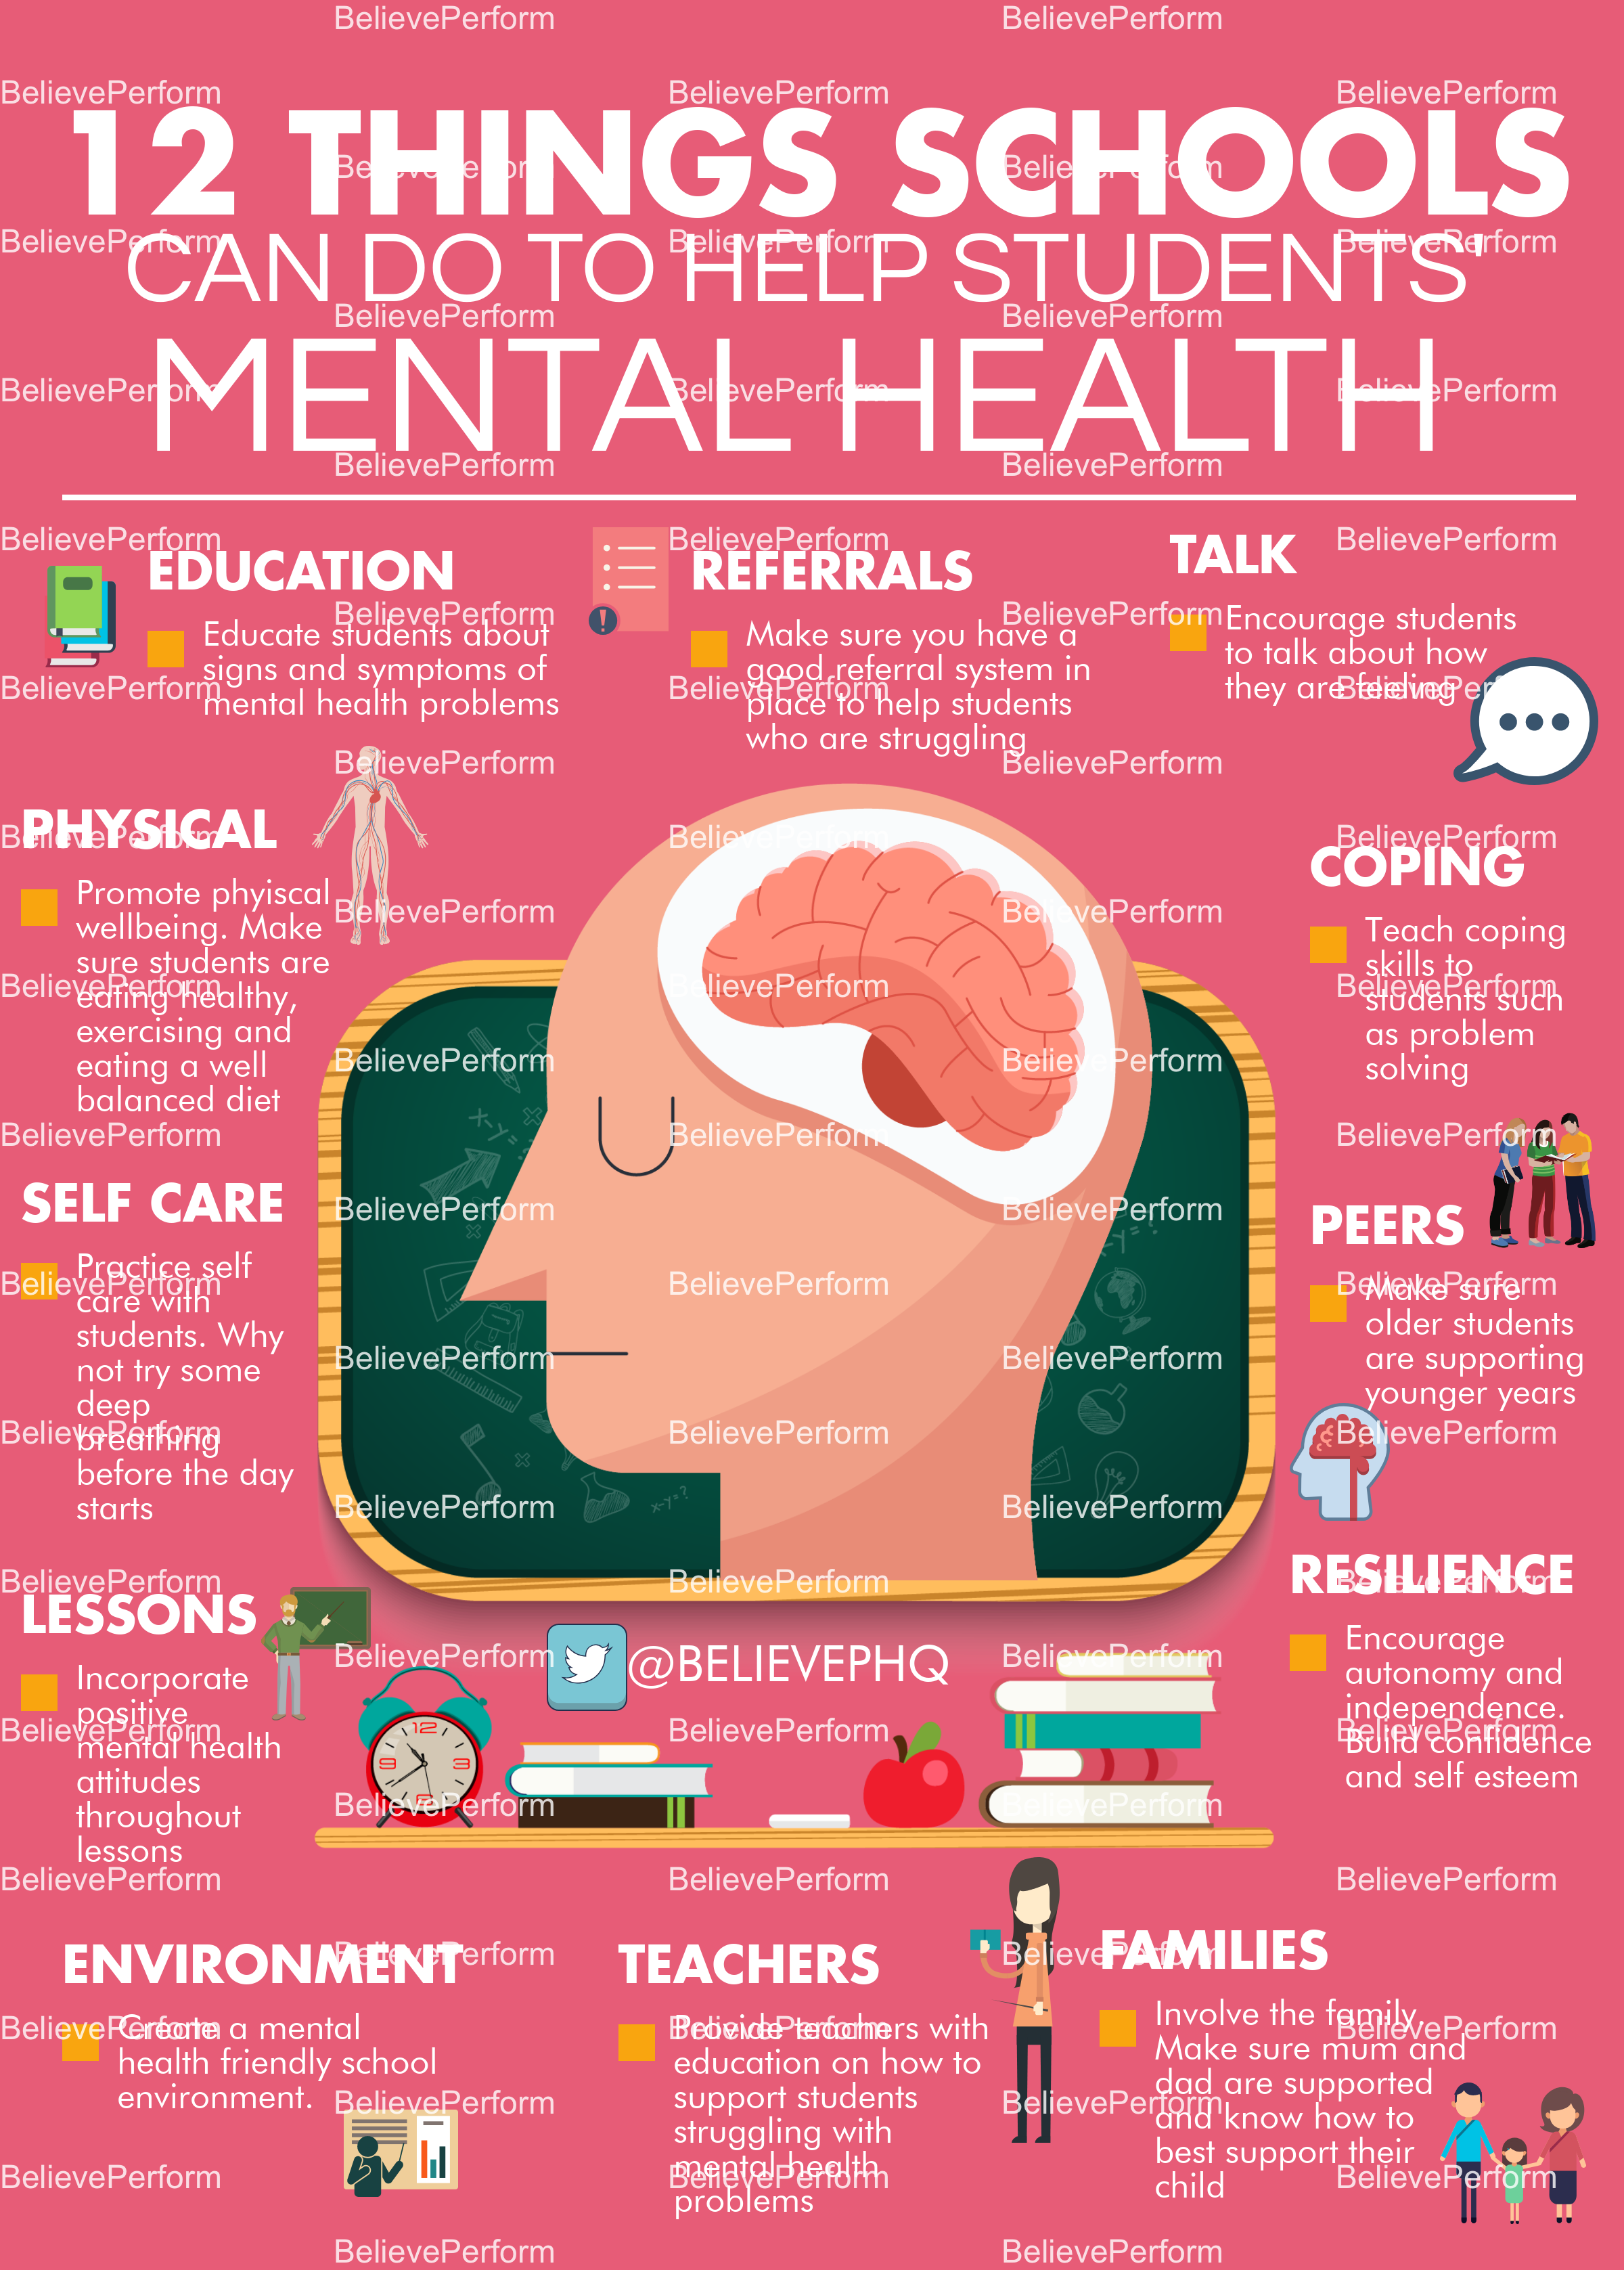 12 things schools can do to help students mental health